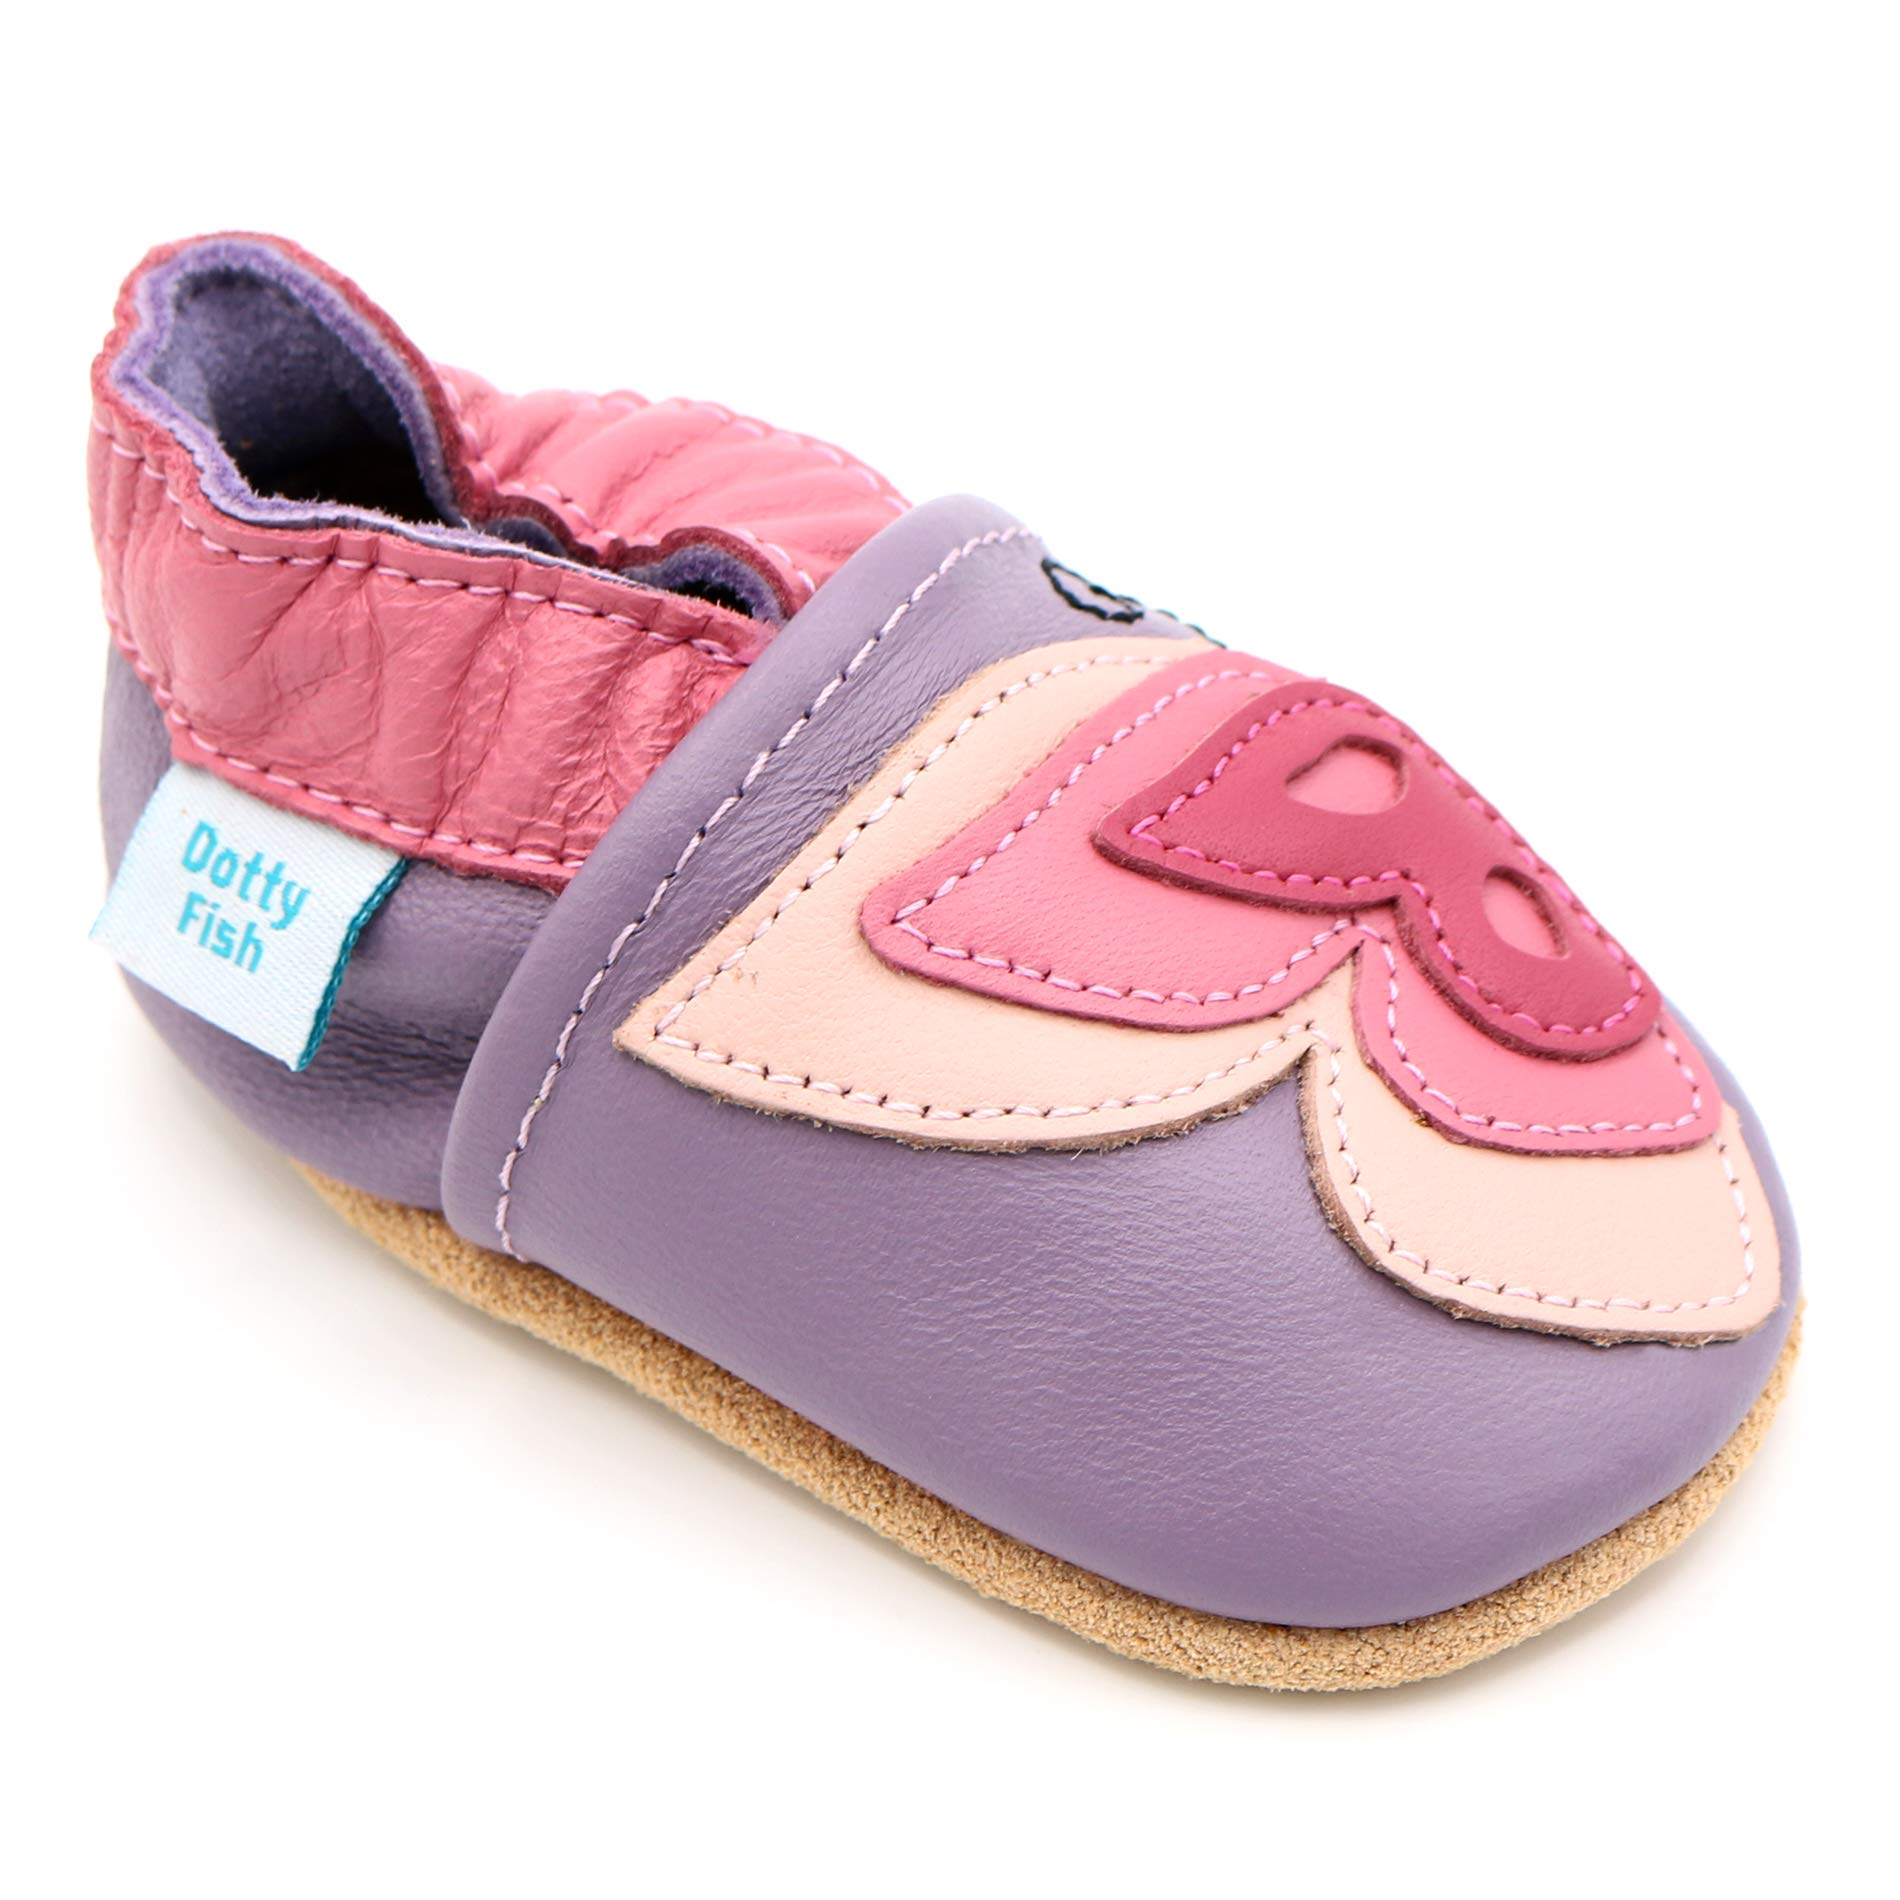 Dotty Fish Baby Toddler Infant Leather Crawling First Walking Shoes 0-6m-4-5yrs